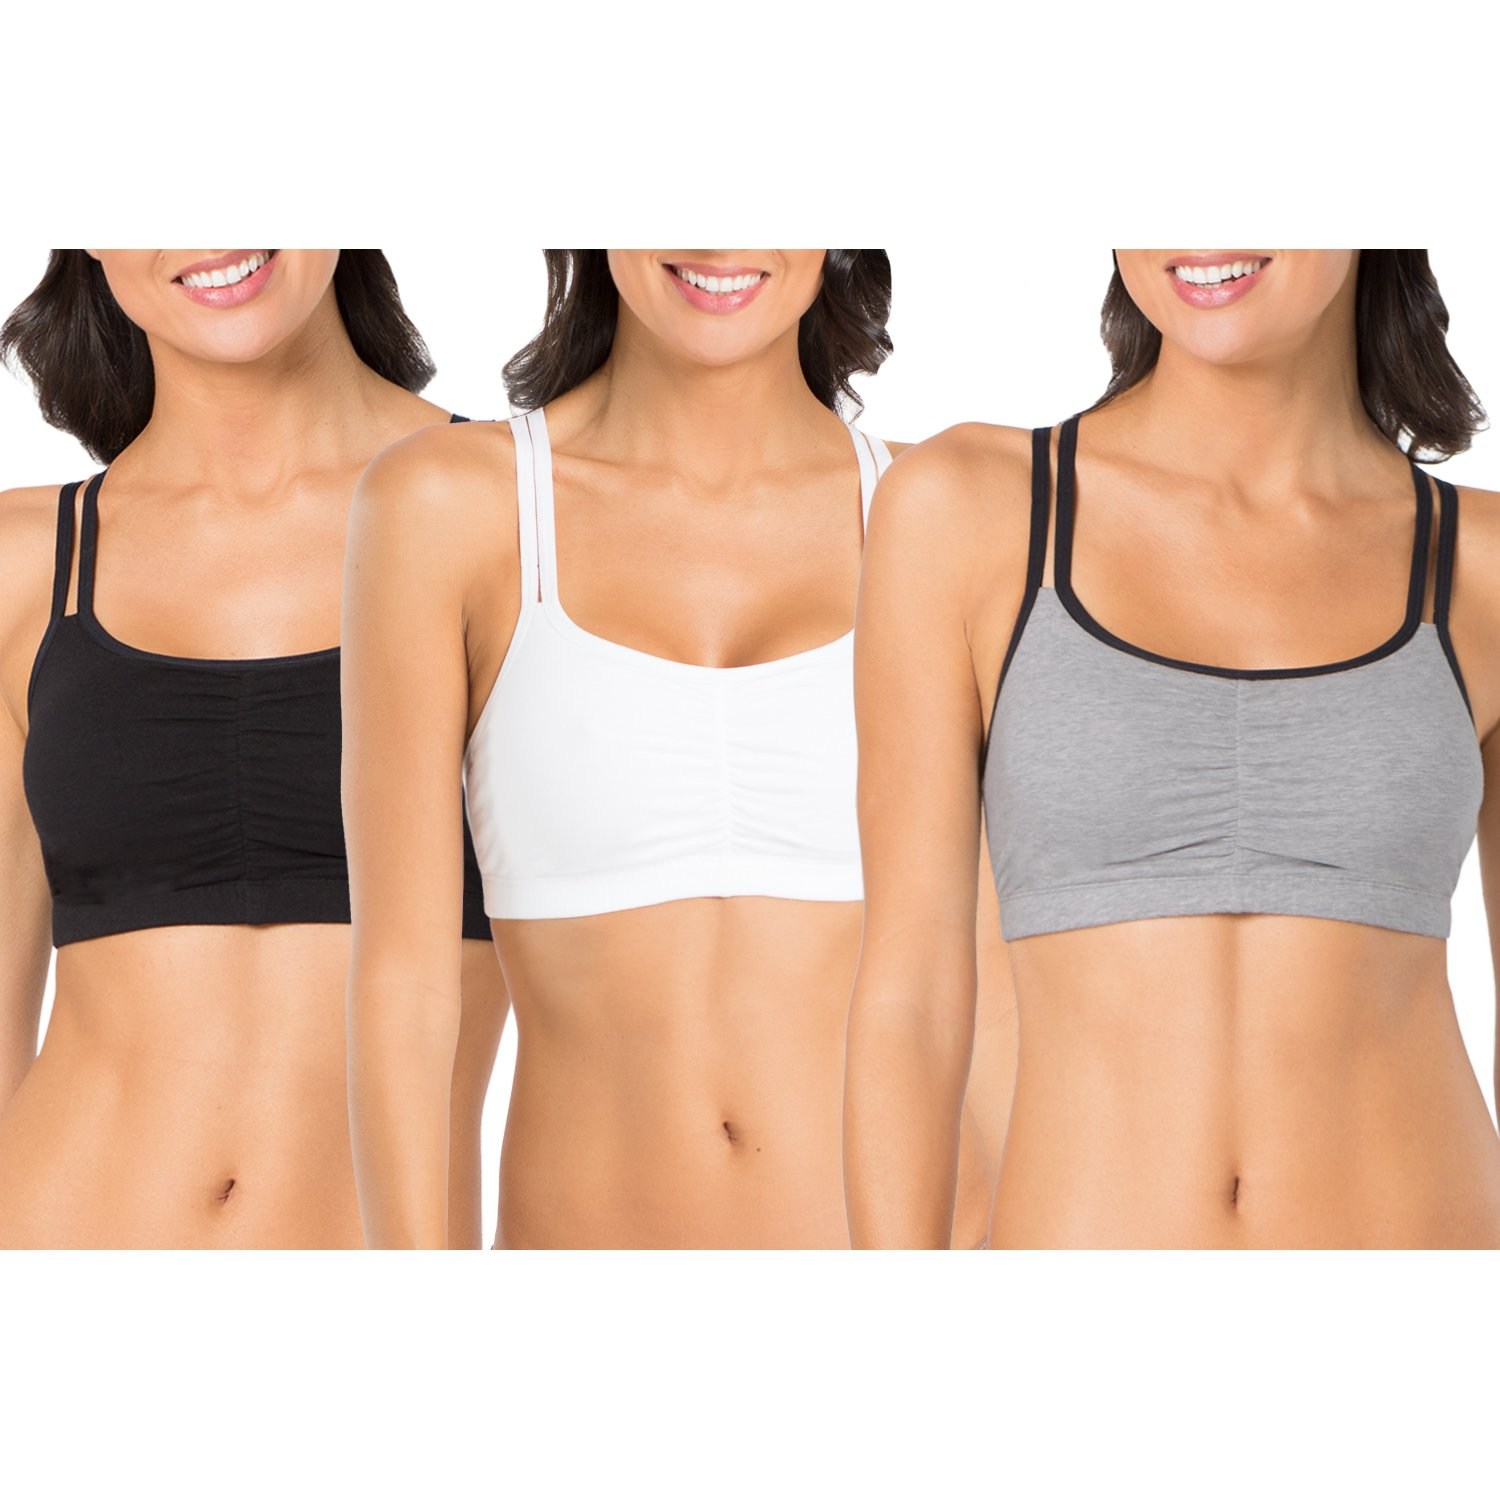 Fruit of the Loom Women's 3 Pack Spaghetti Sports Bra, Grey Black/White/Black, 32 by Fruit of the Loom